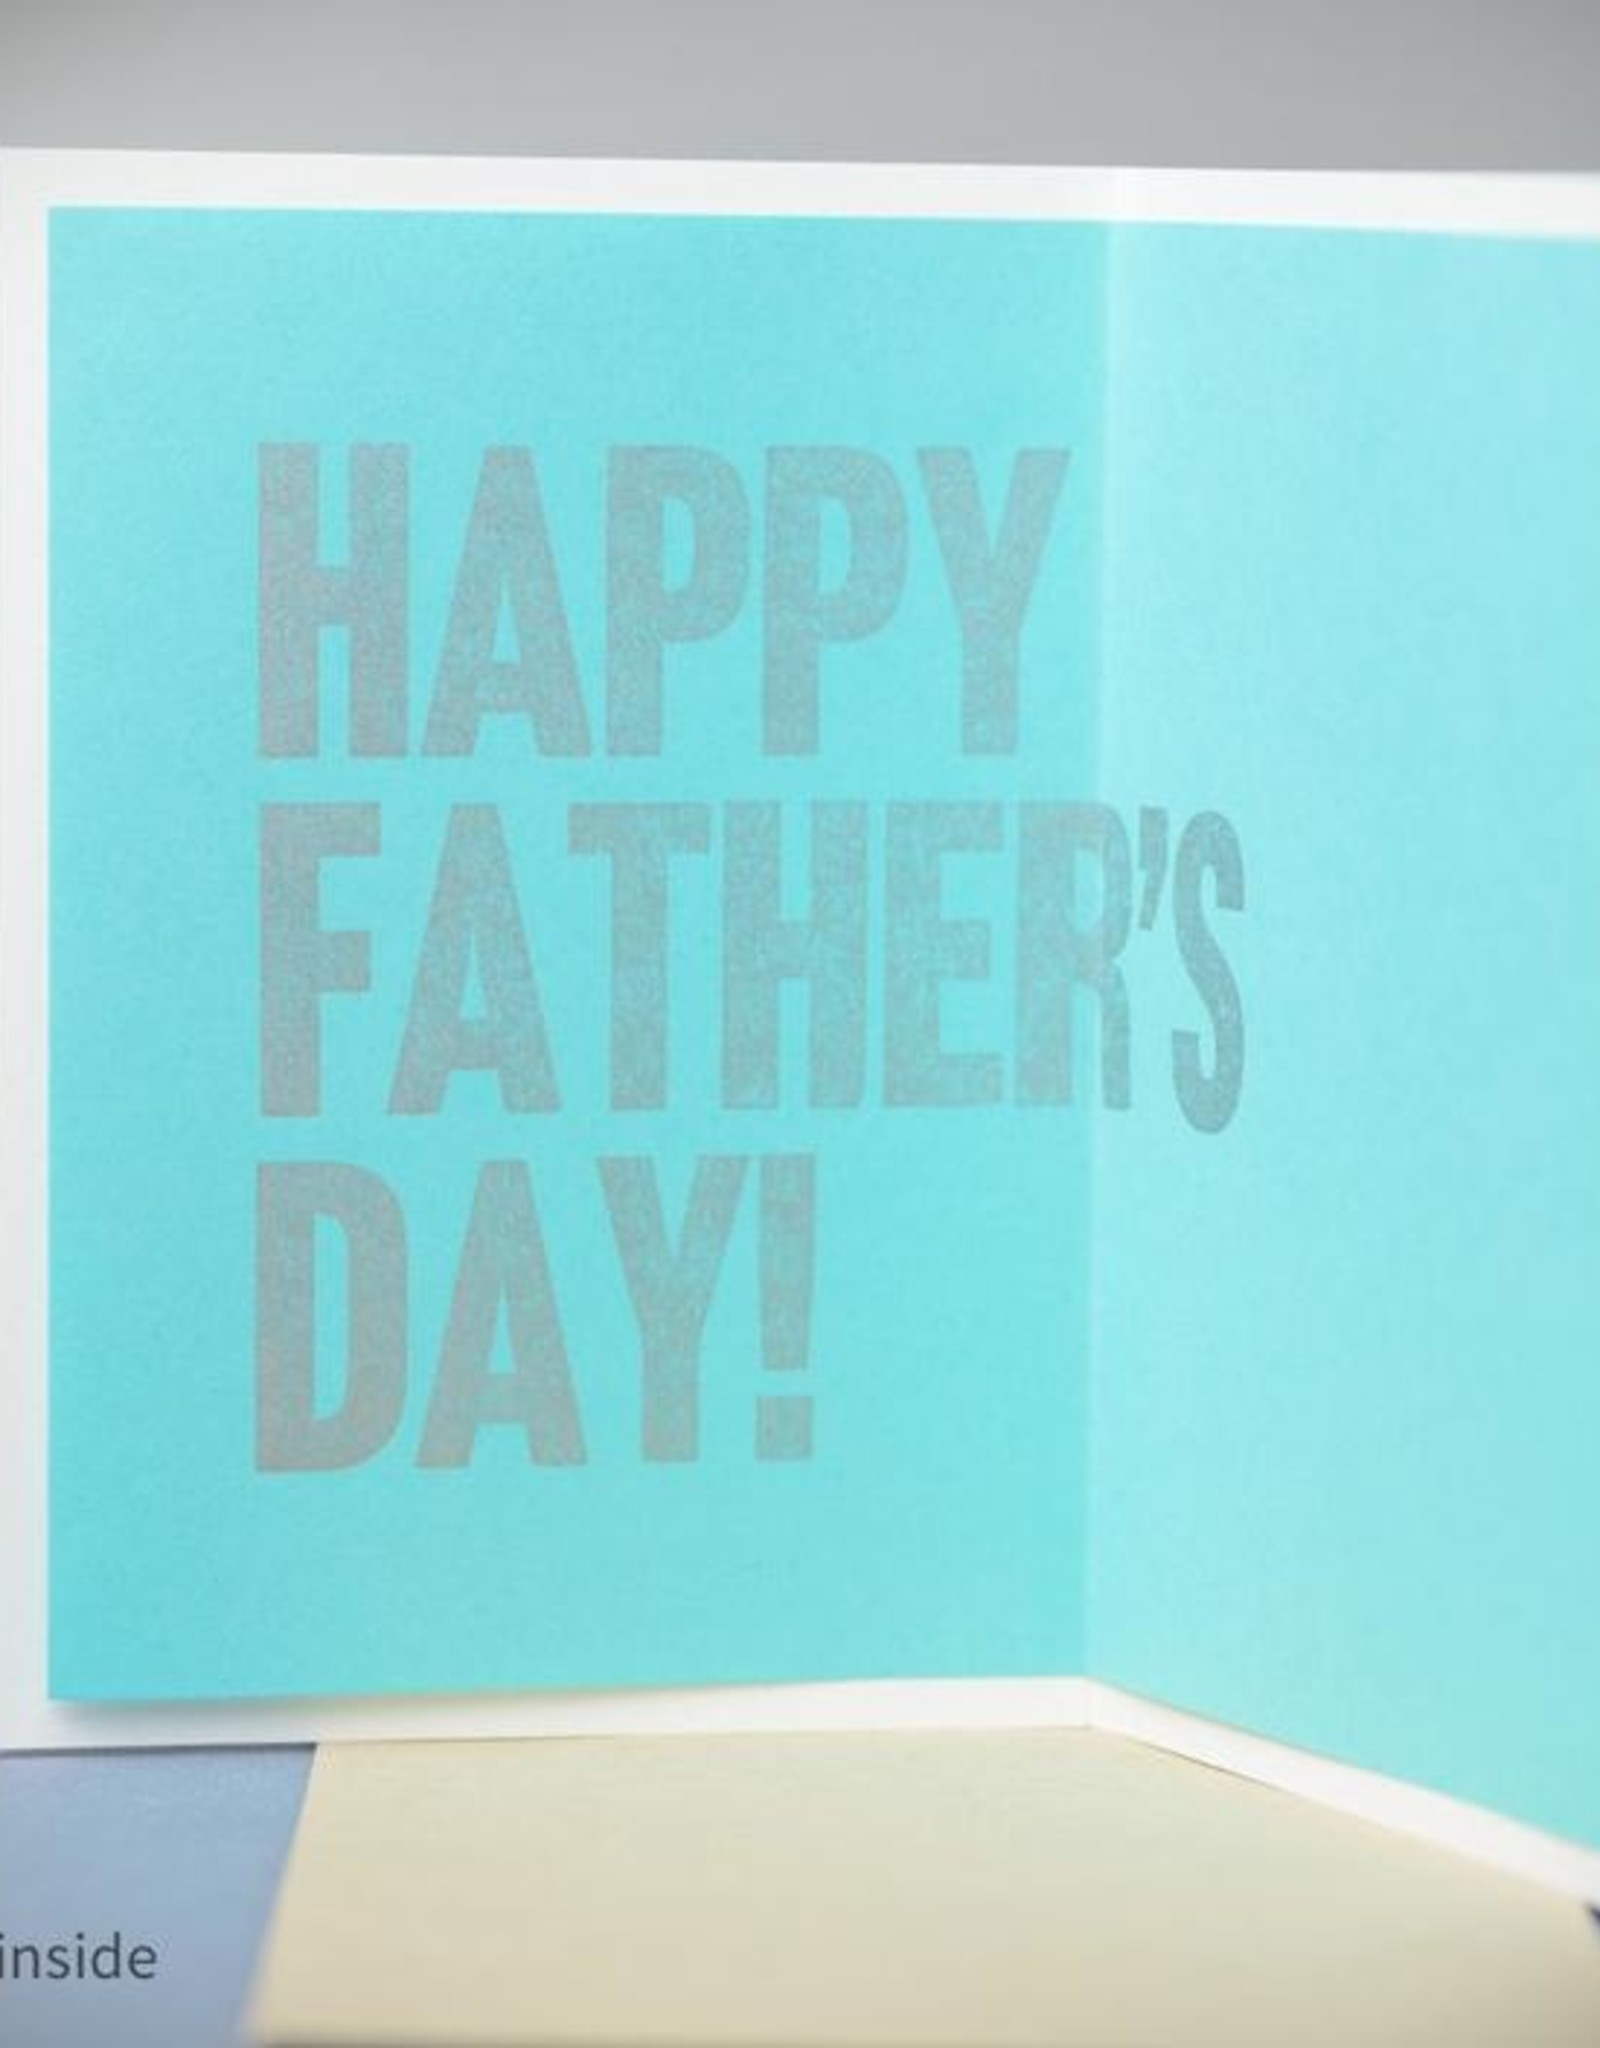 Inkello Father's Day Cards by Inkello